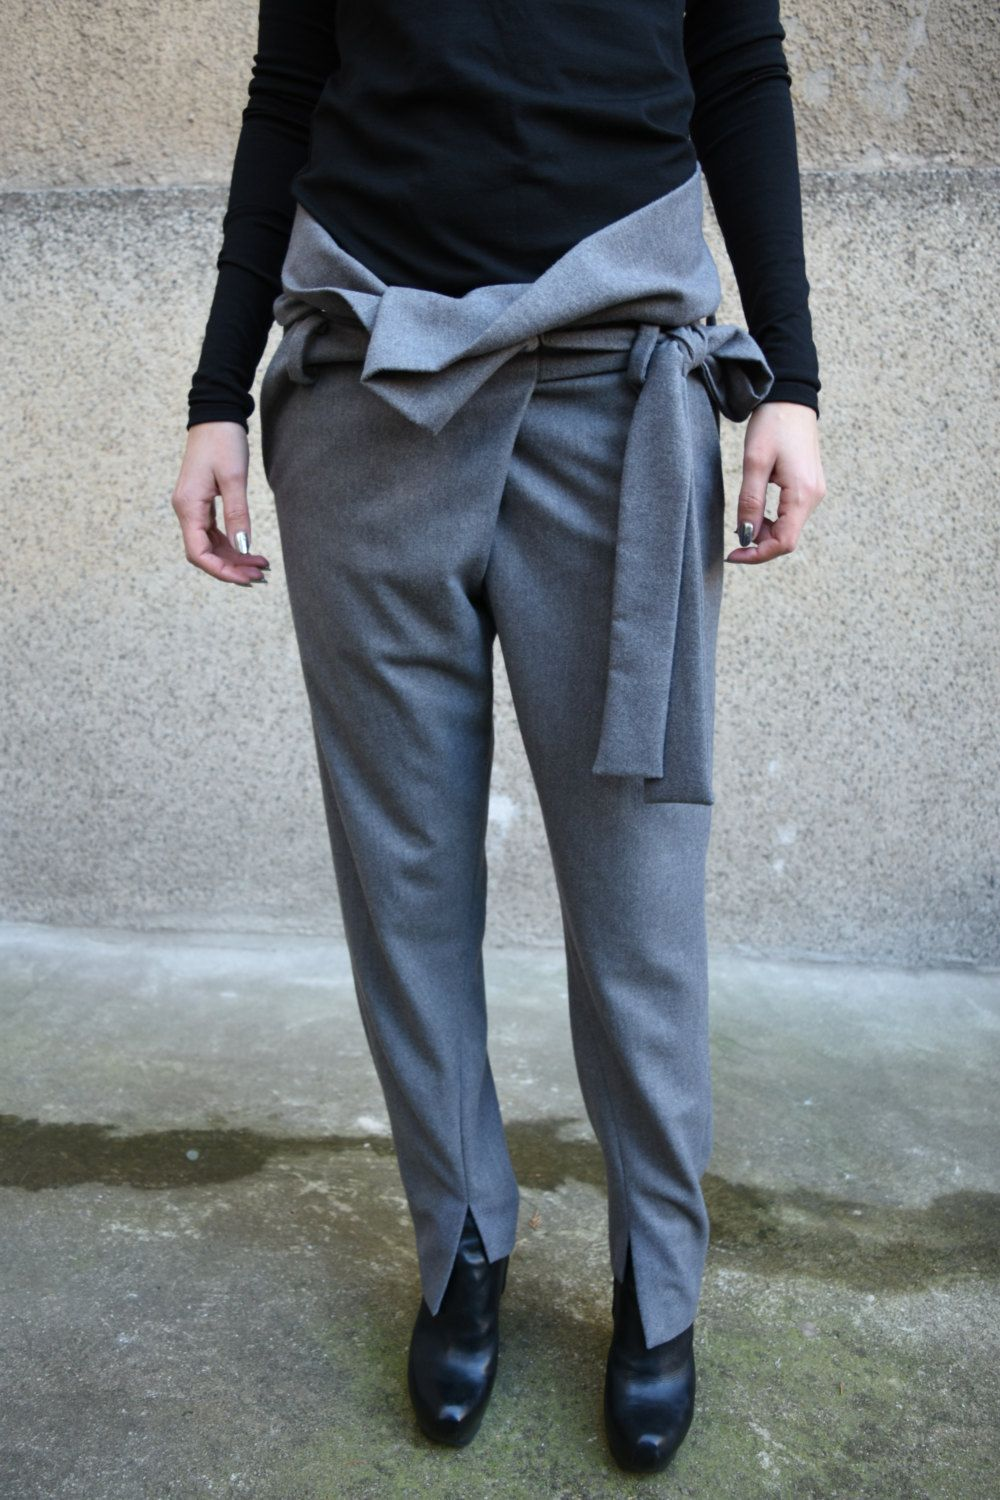 How to wool wear pants casually